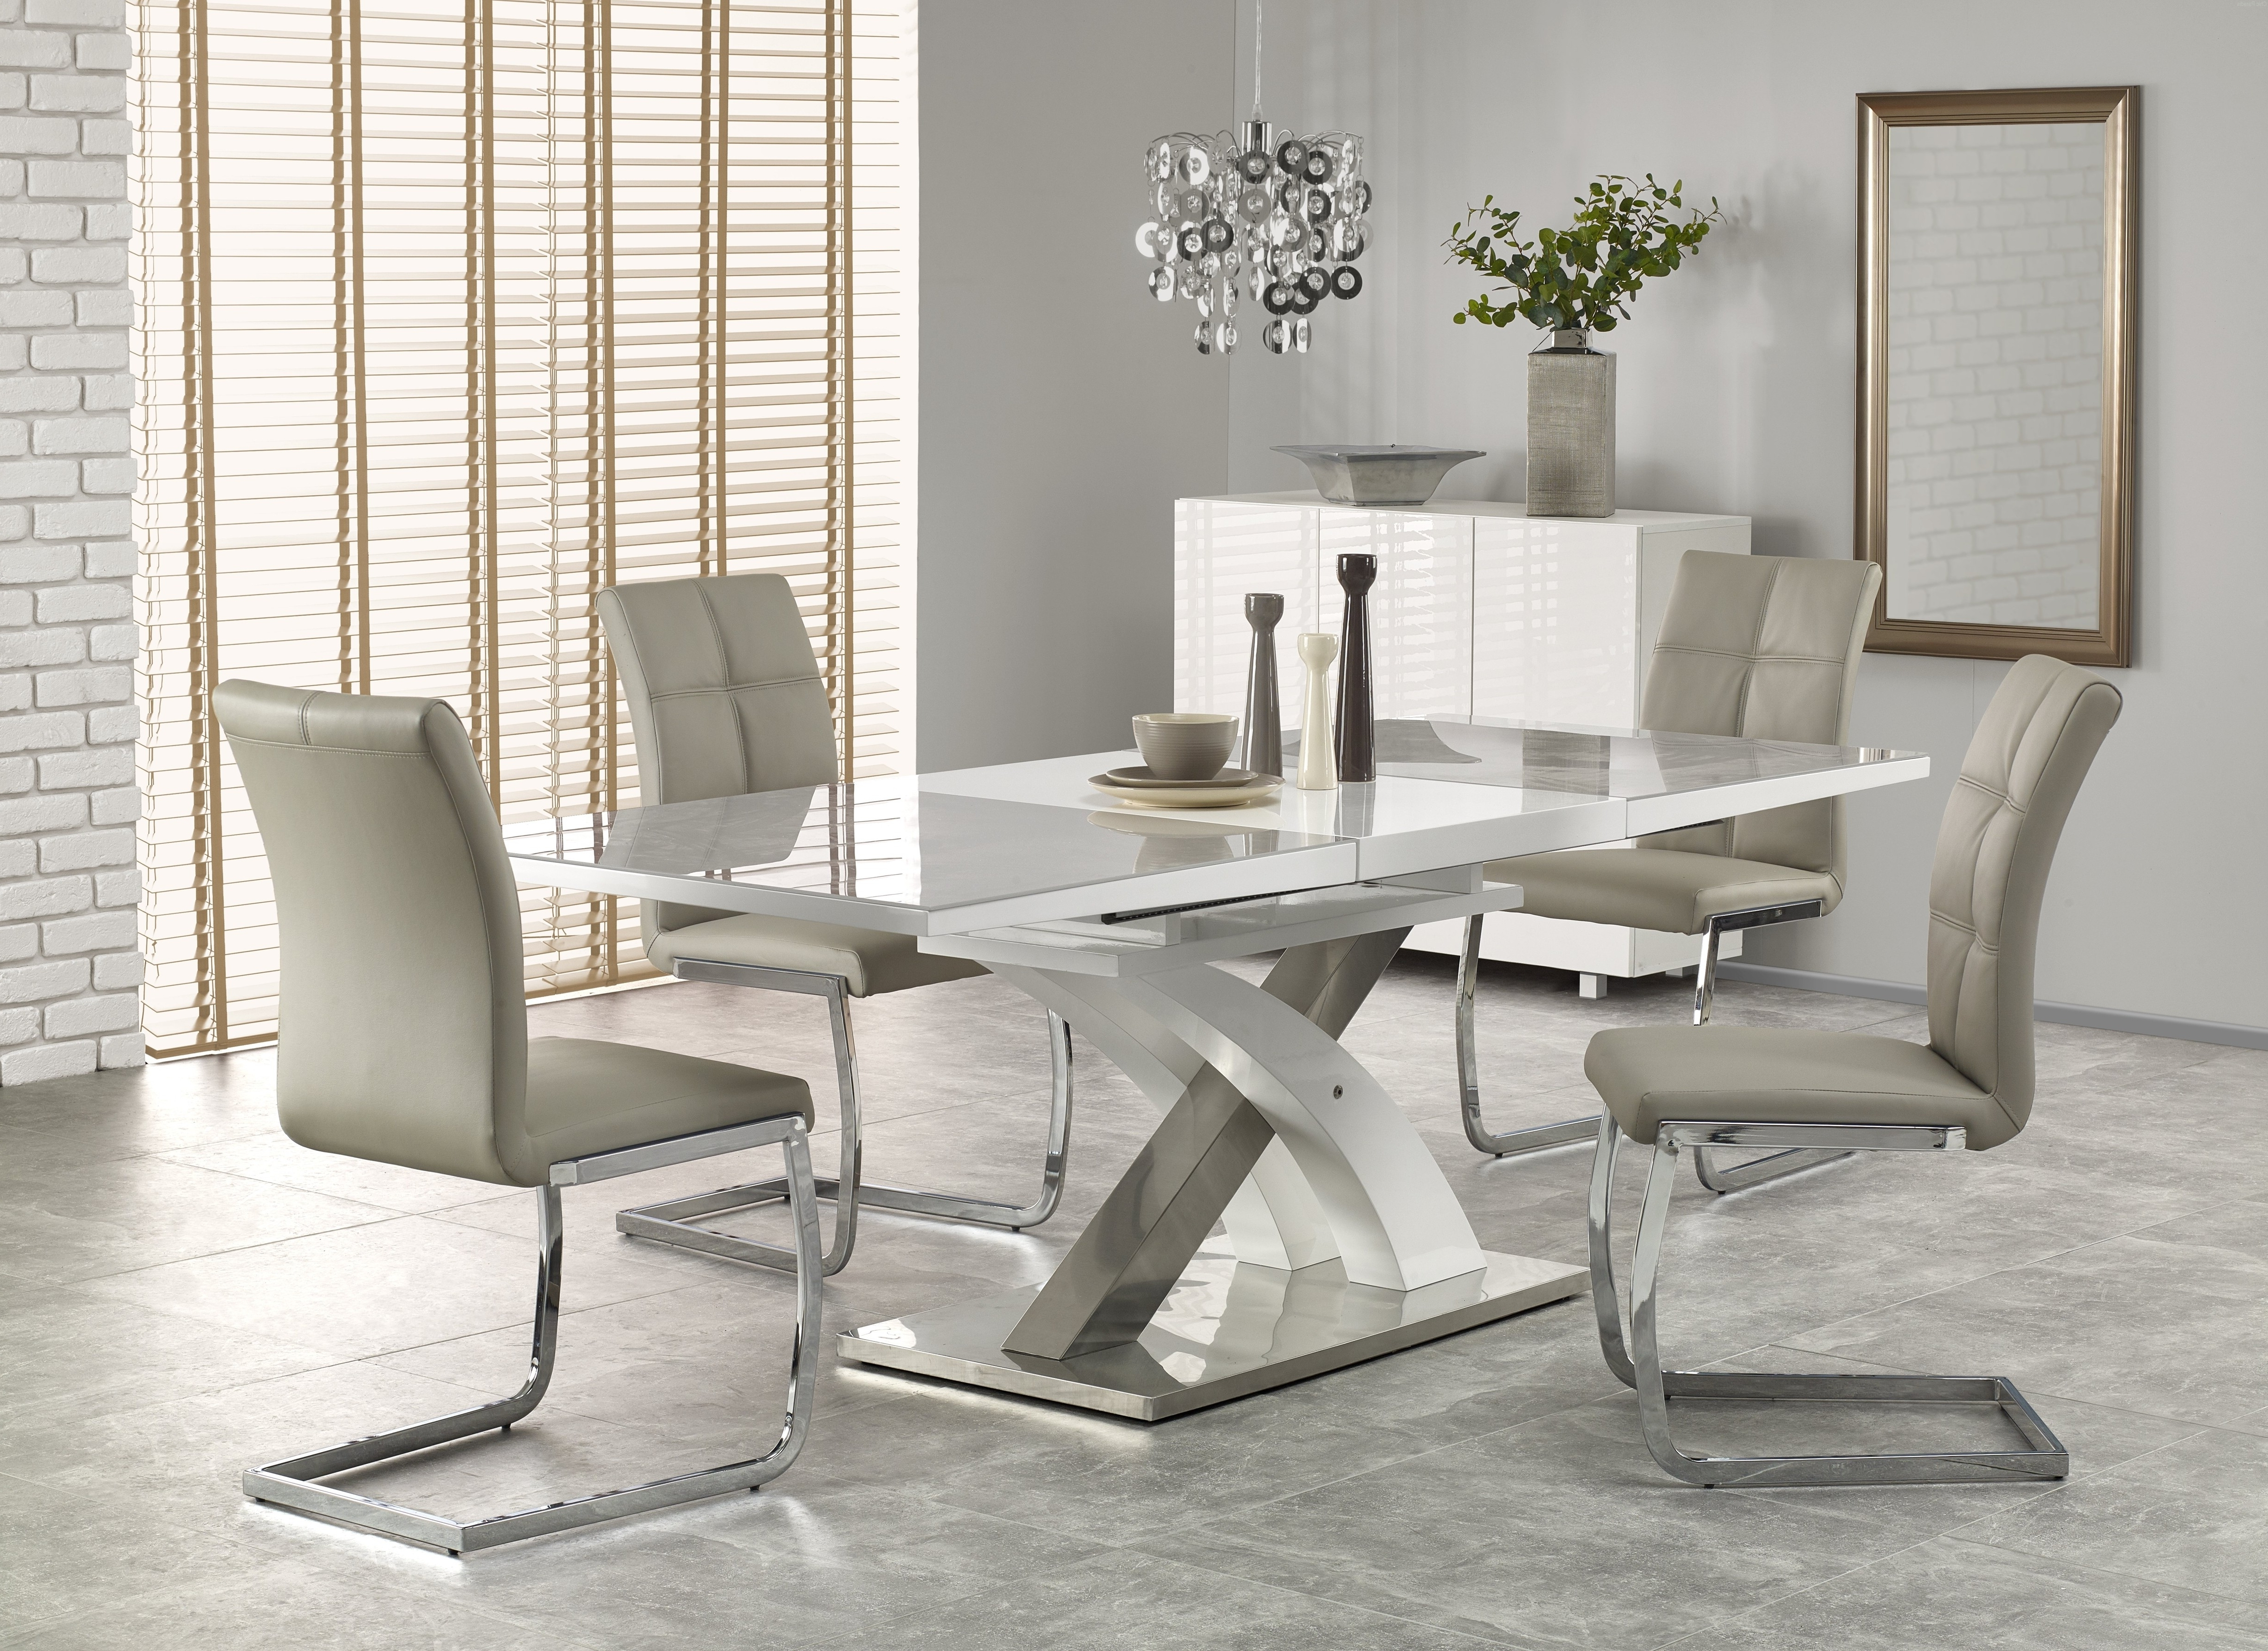 Most Popular Extending Marble Dining Tables Regarding Buy Harmony High Gloss White Grey Glass Extendable Dining Table (View 18 of 25)